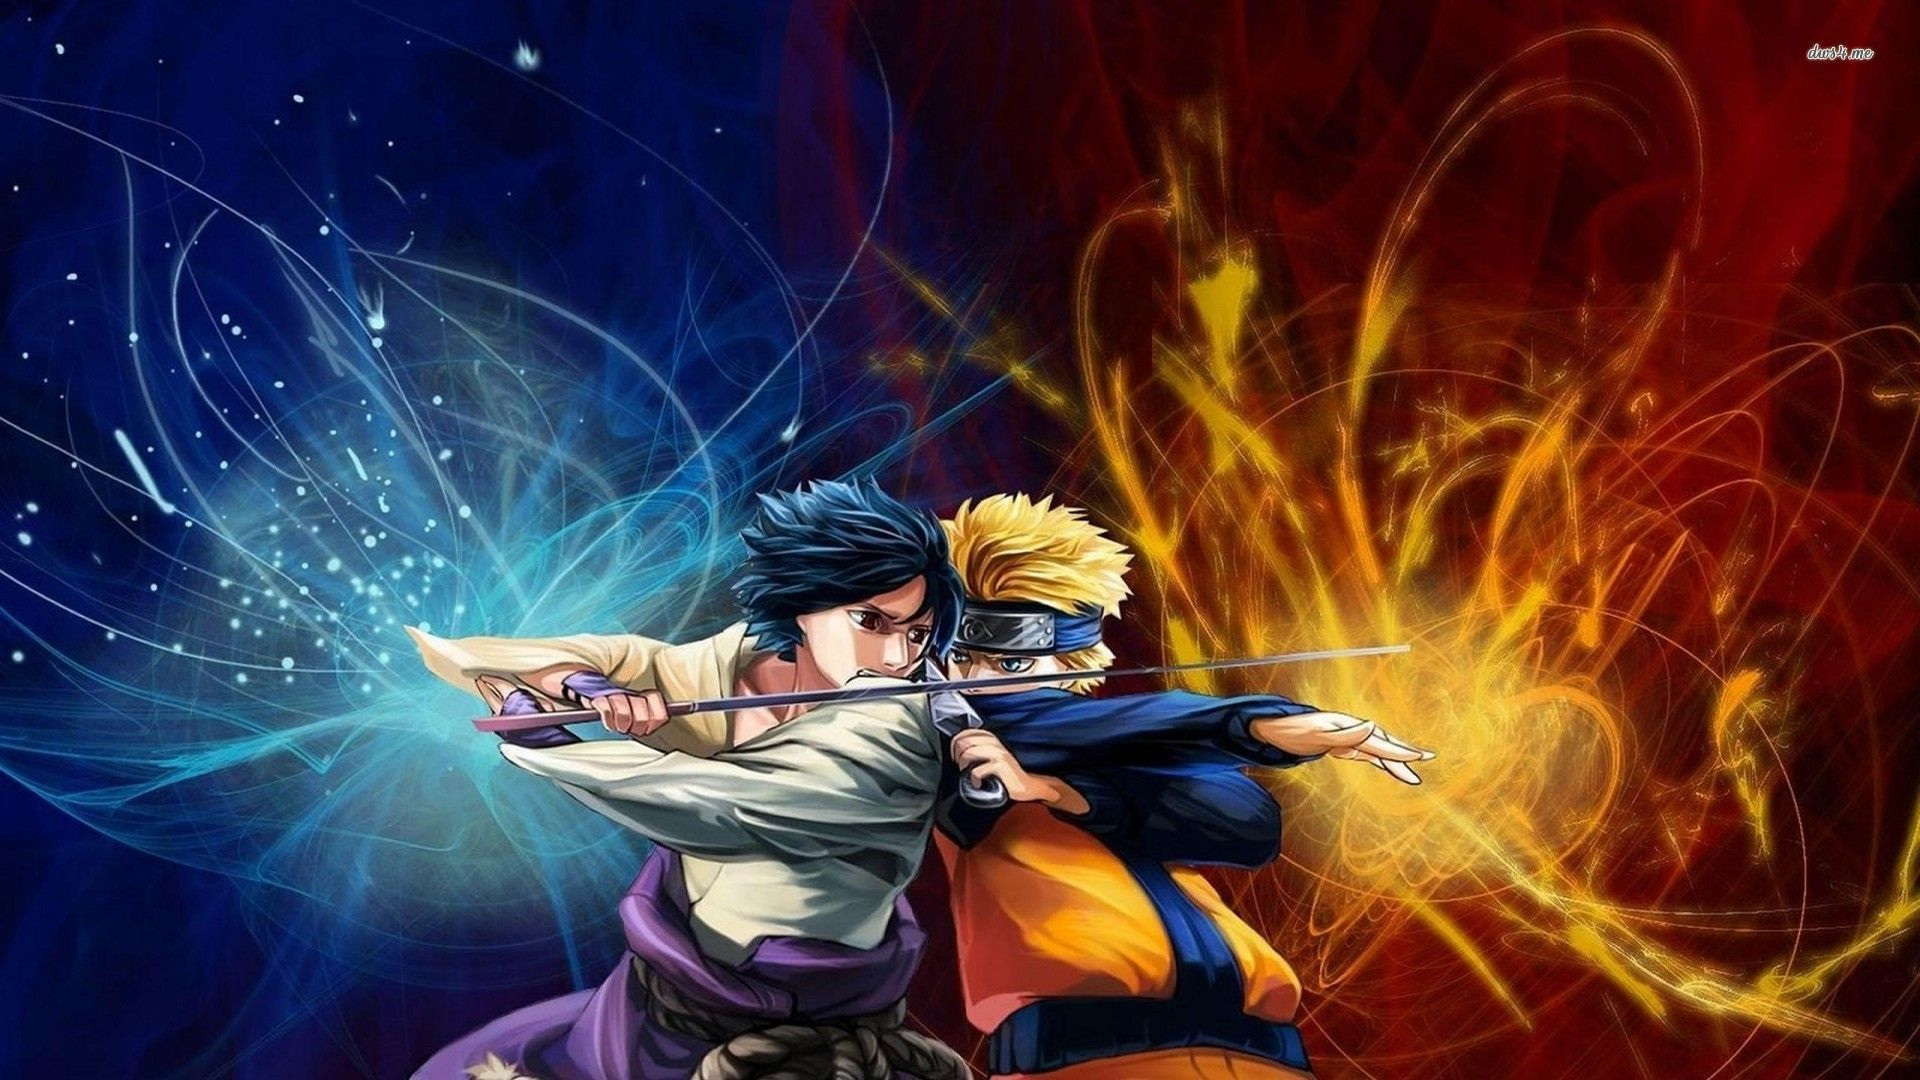 Naruto Shippuden Vs Sasuke Uchiha Wallpaper HD 1920x1080 518 | live wallpaper | Naruto vs sasuke ...